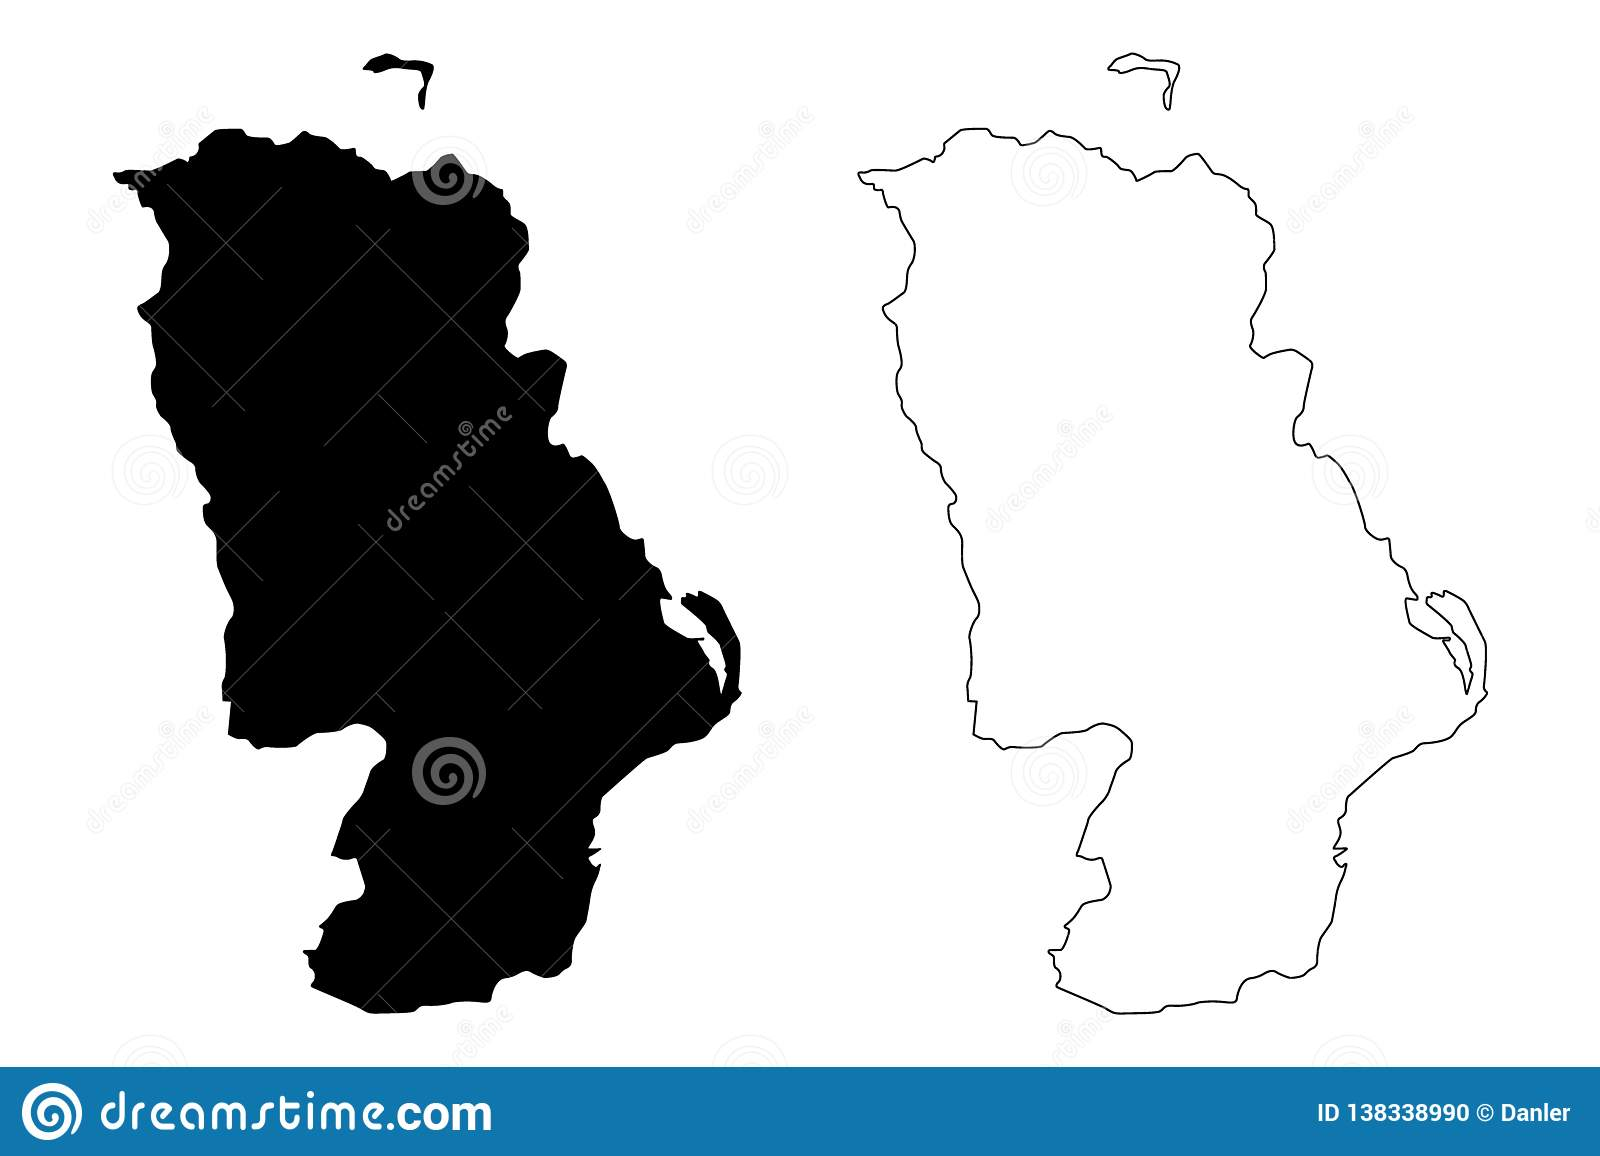 Map Of Northern Ireland Counties.County Antrim Map Vector Stock Vector Illustration Of Geography